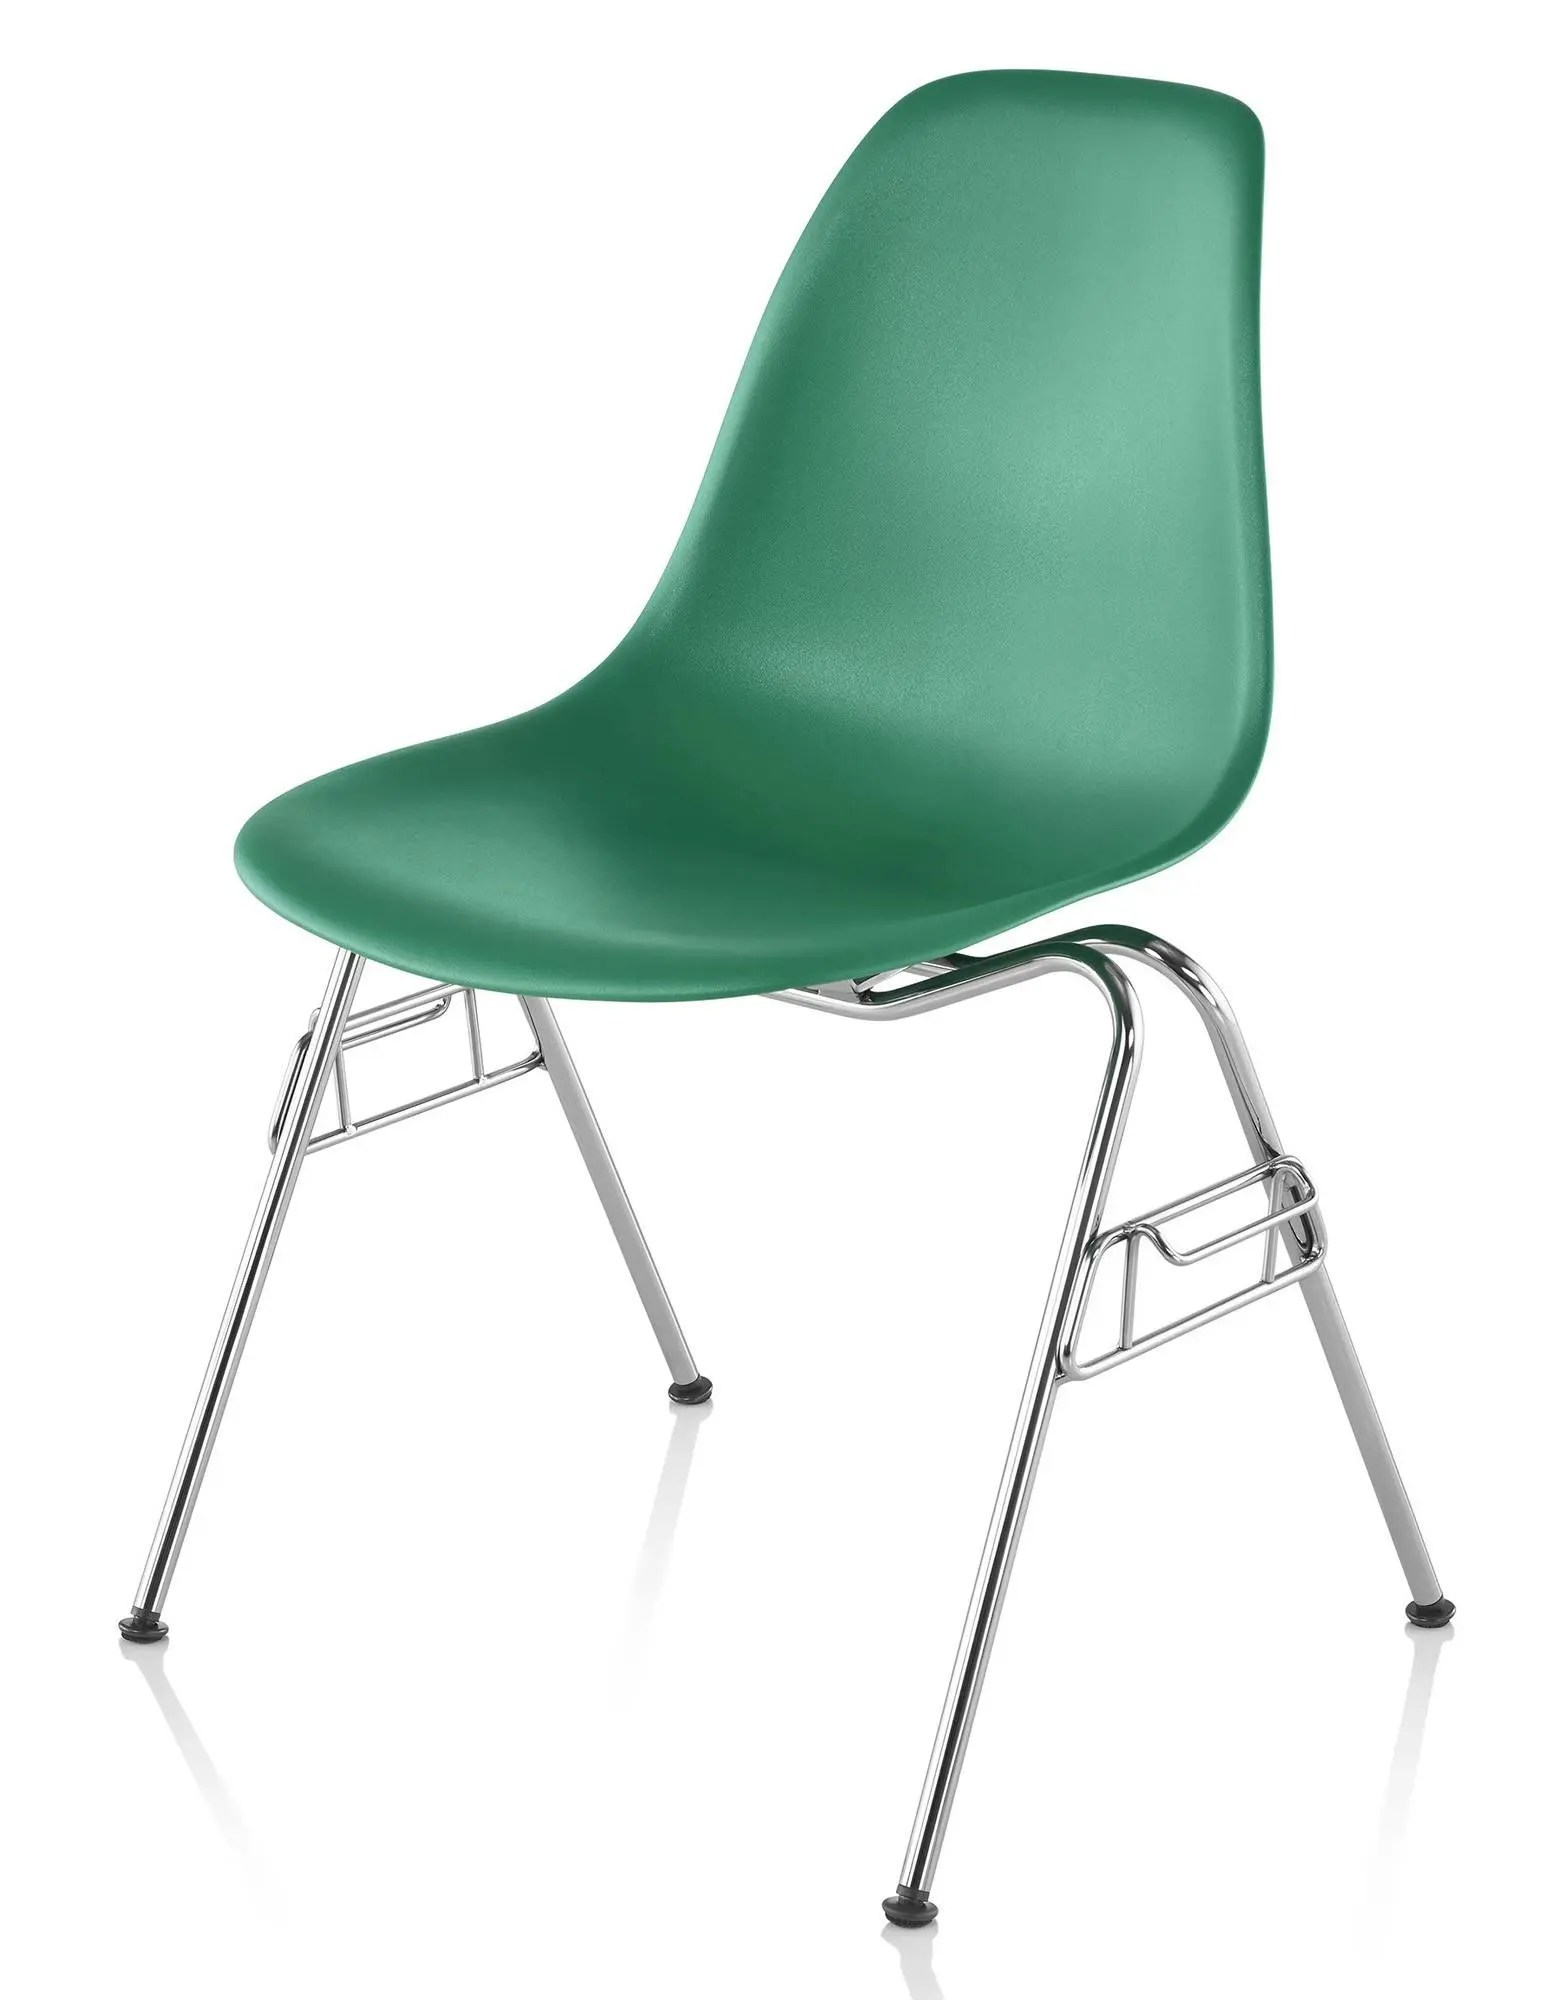 plastic molded chairs wicker chair replacement cushion covers herman miller eames side gr shop